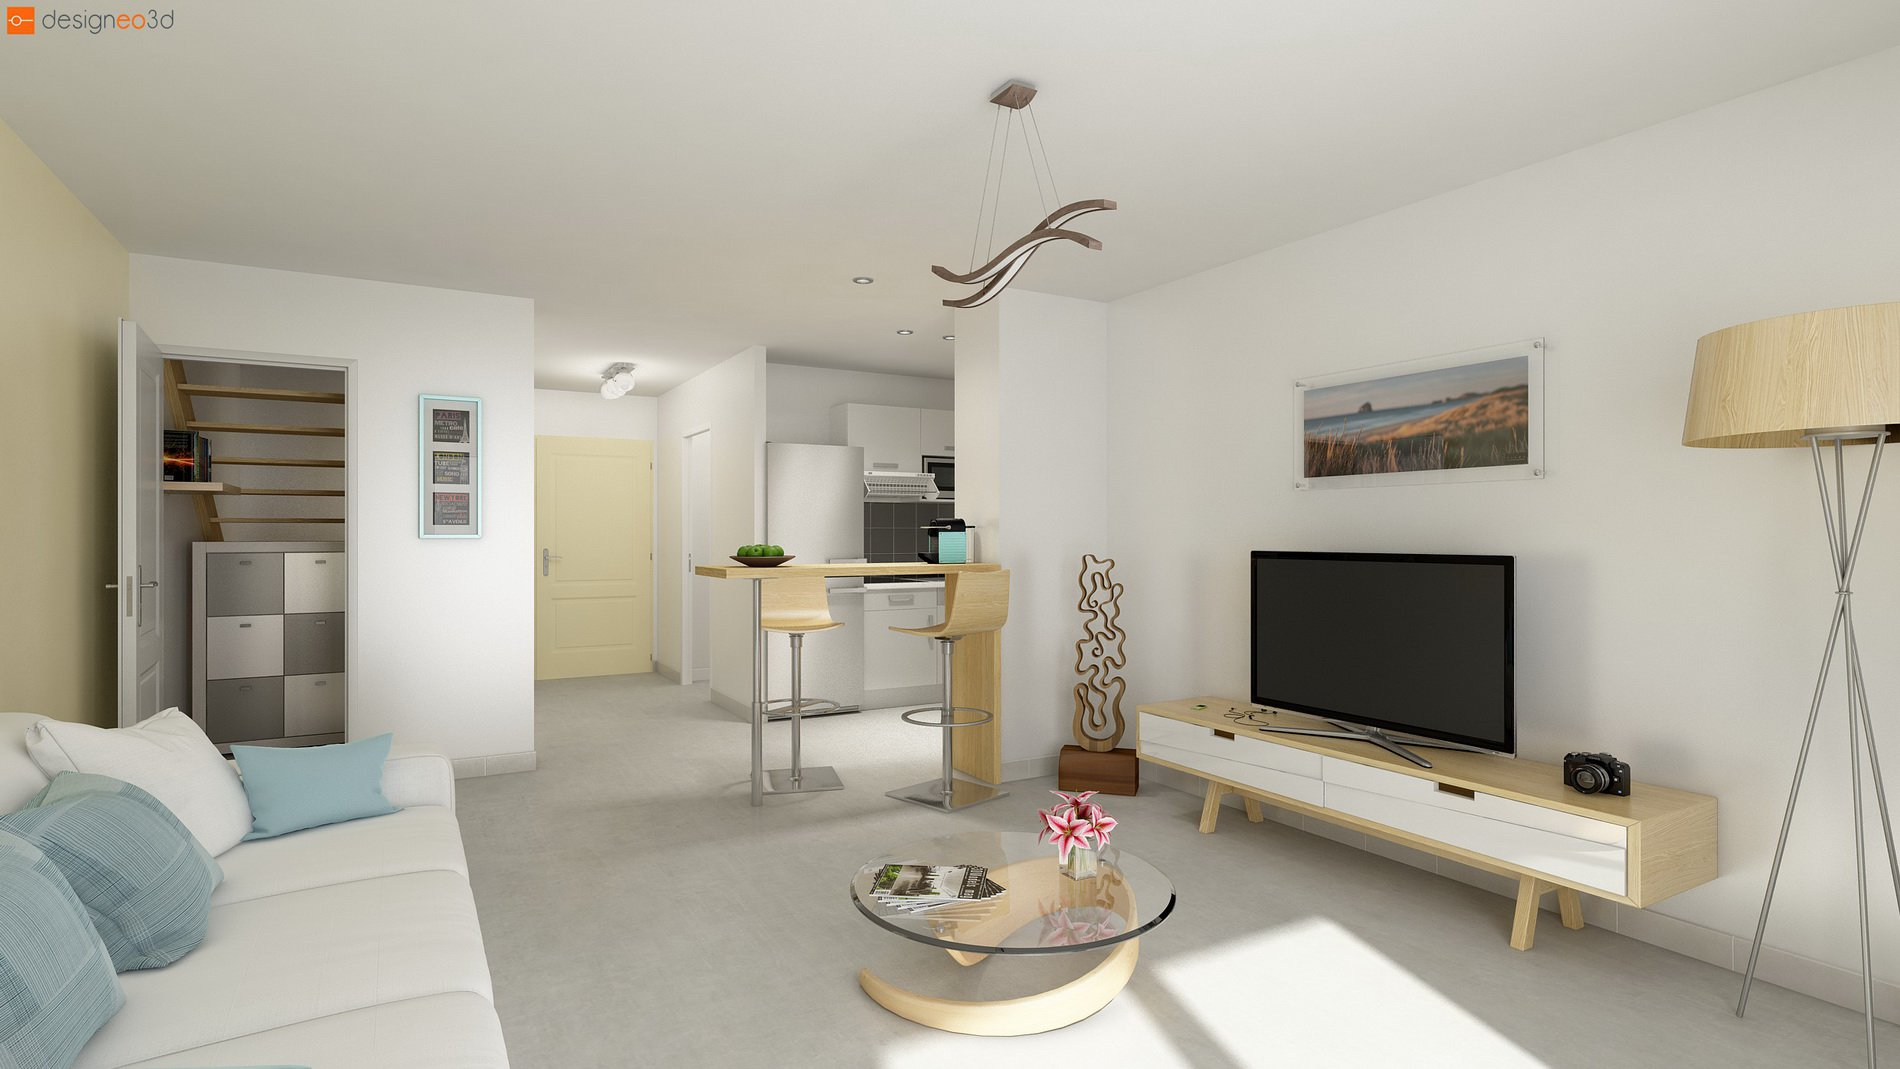 New build program 300 m from the beach in Valras Plage with terraced houses and apartments